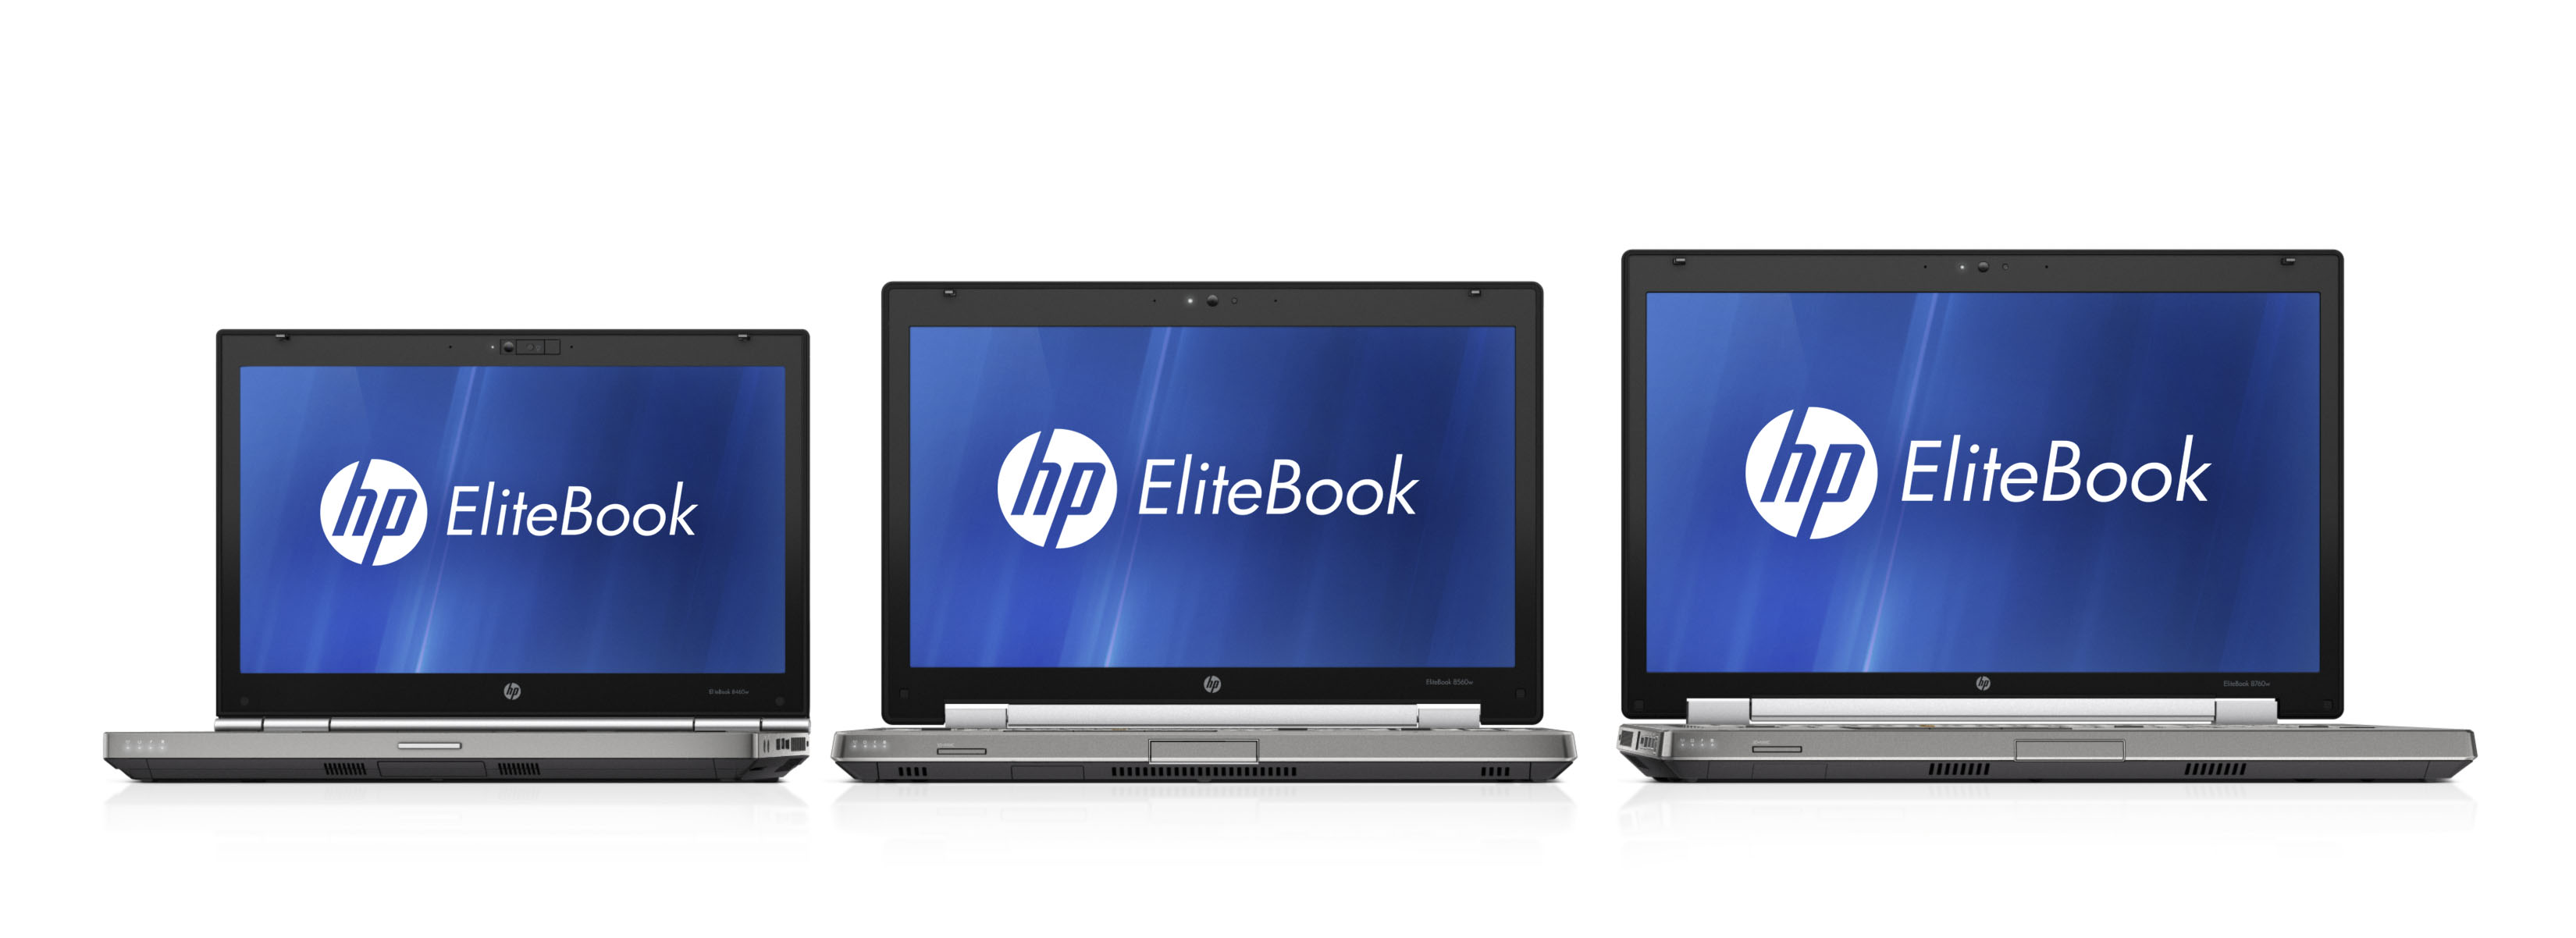 EliteBook 8760w Comparison Row